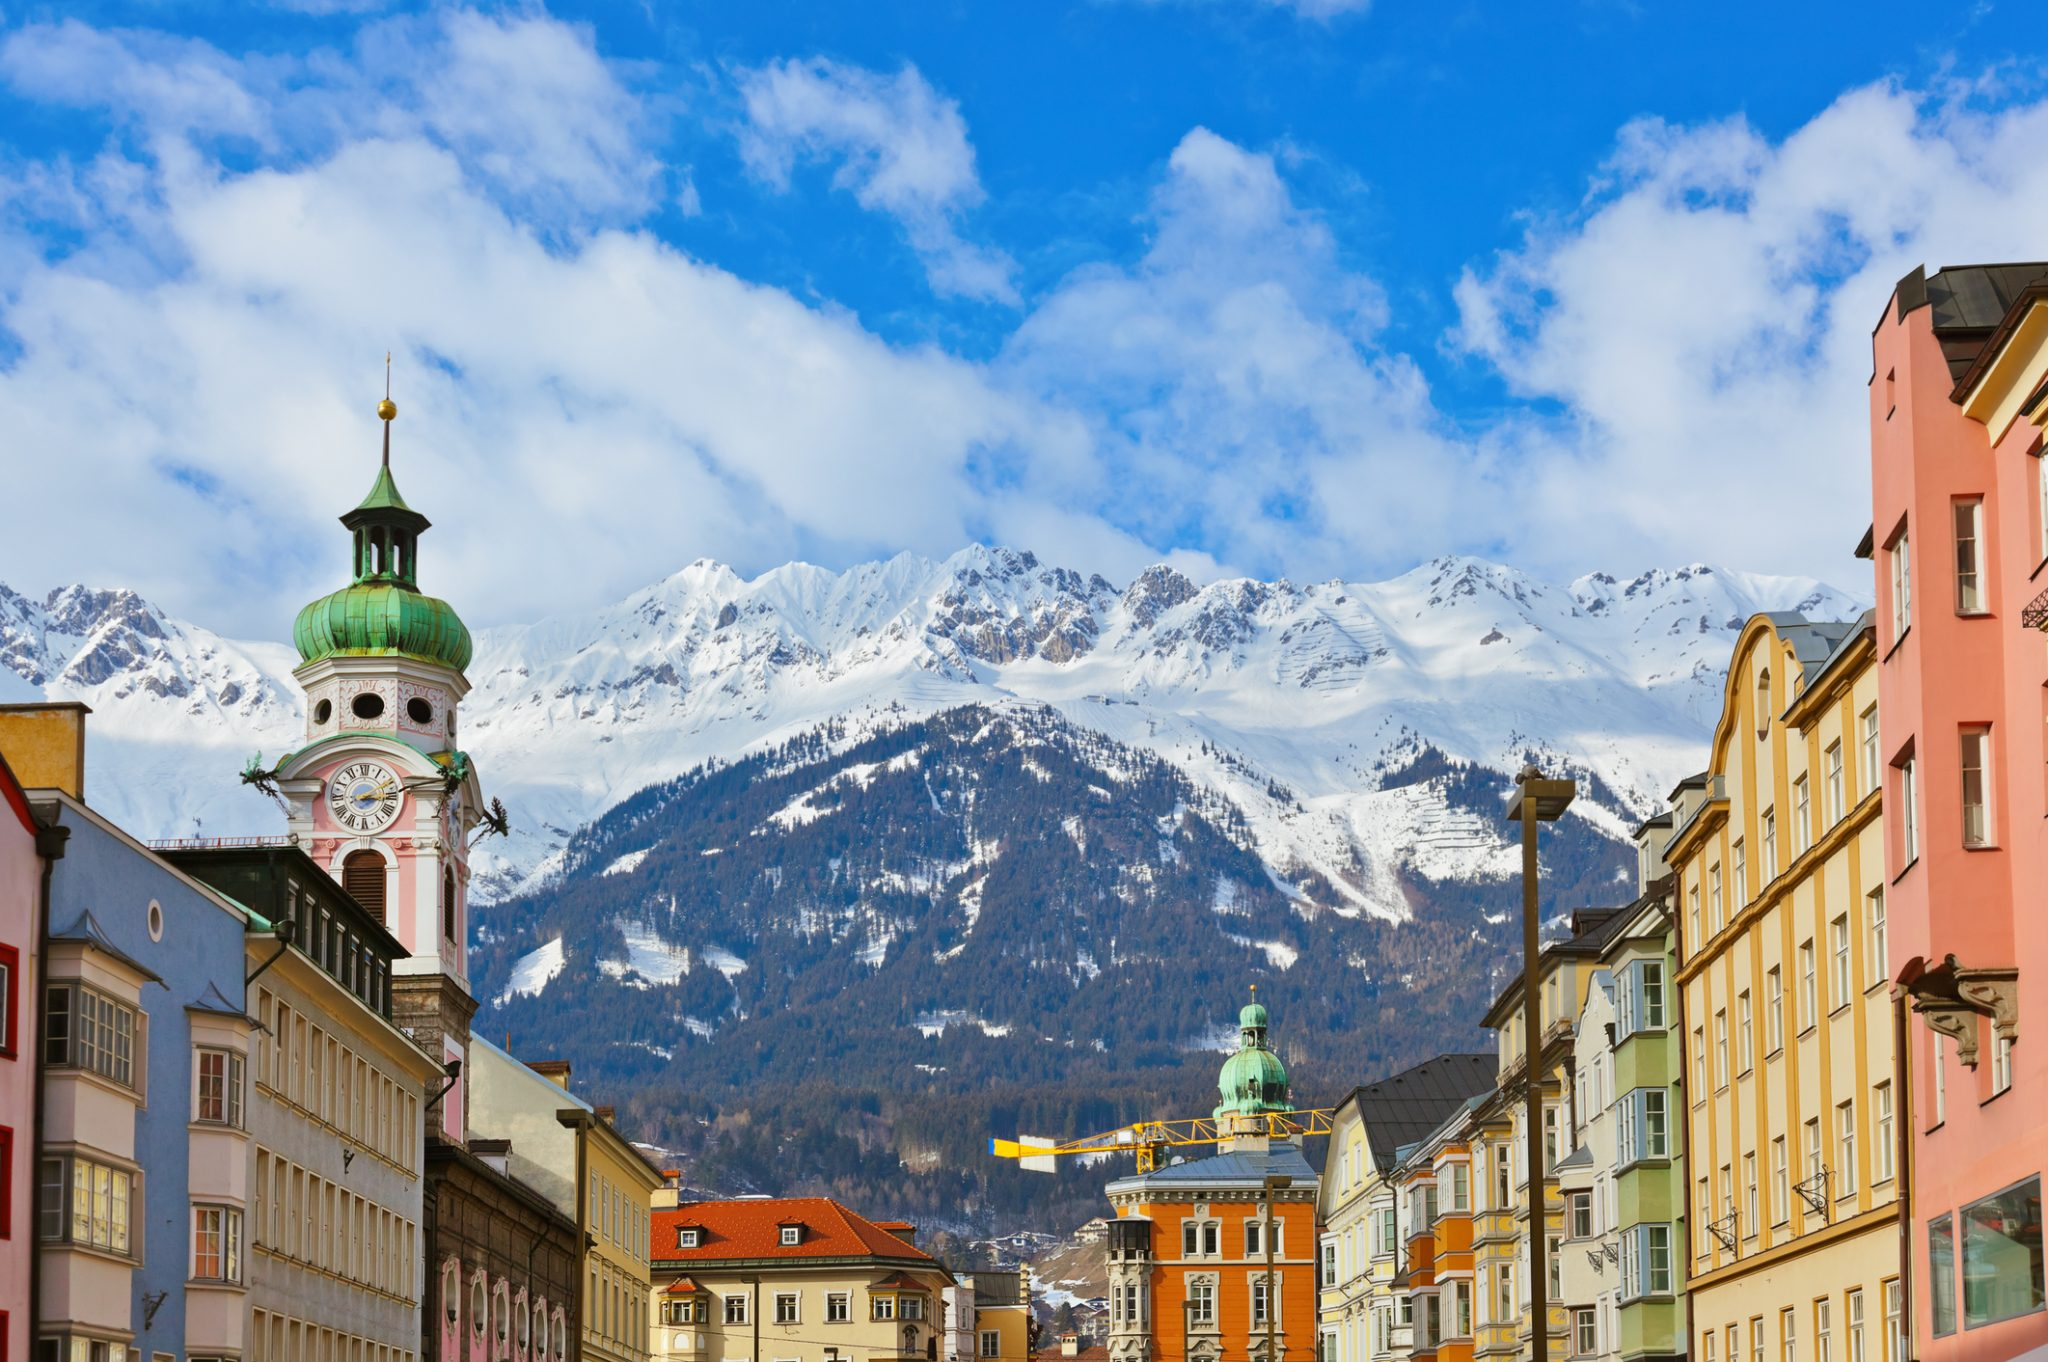 Old town in Innsbruck, Austria